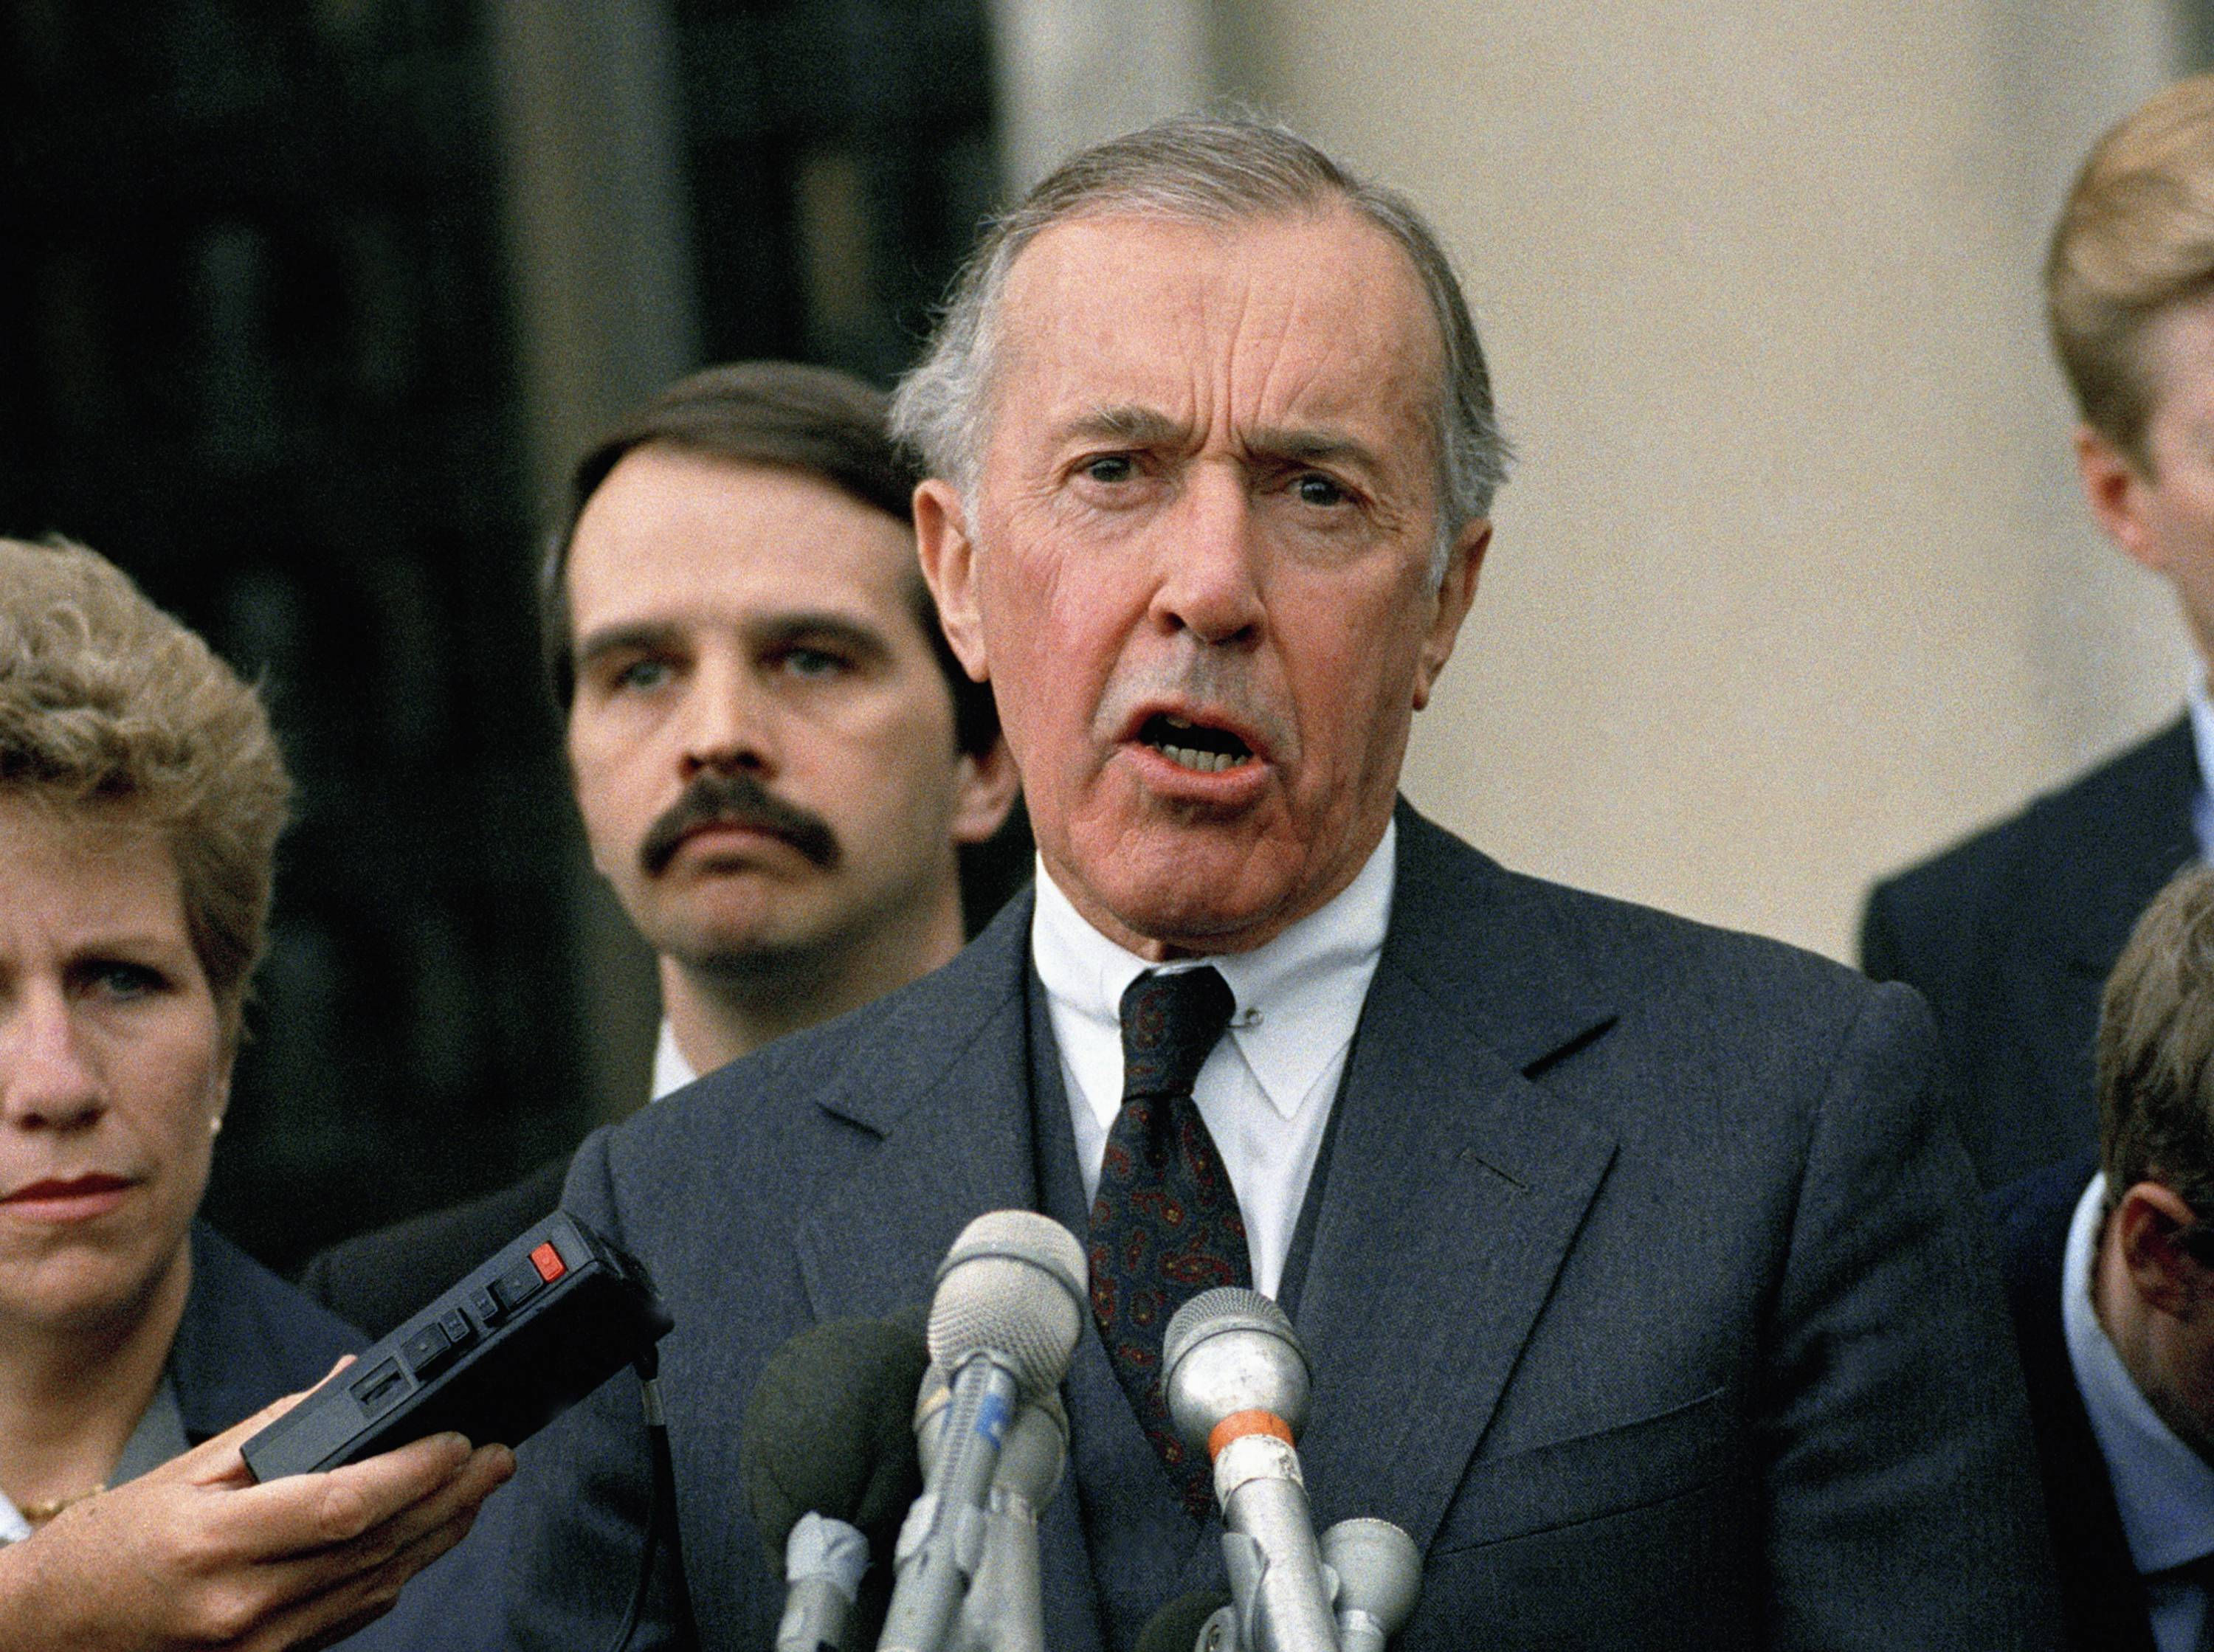 Iran-Contra special prosecutor Lawrence Walsh speaking to reporters outside U.S. District in Washington.